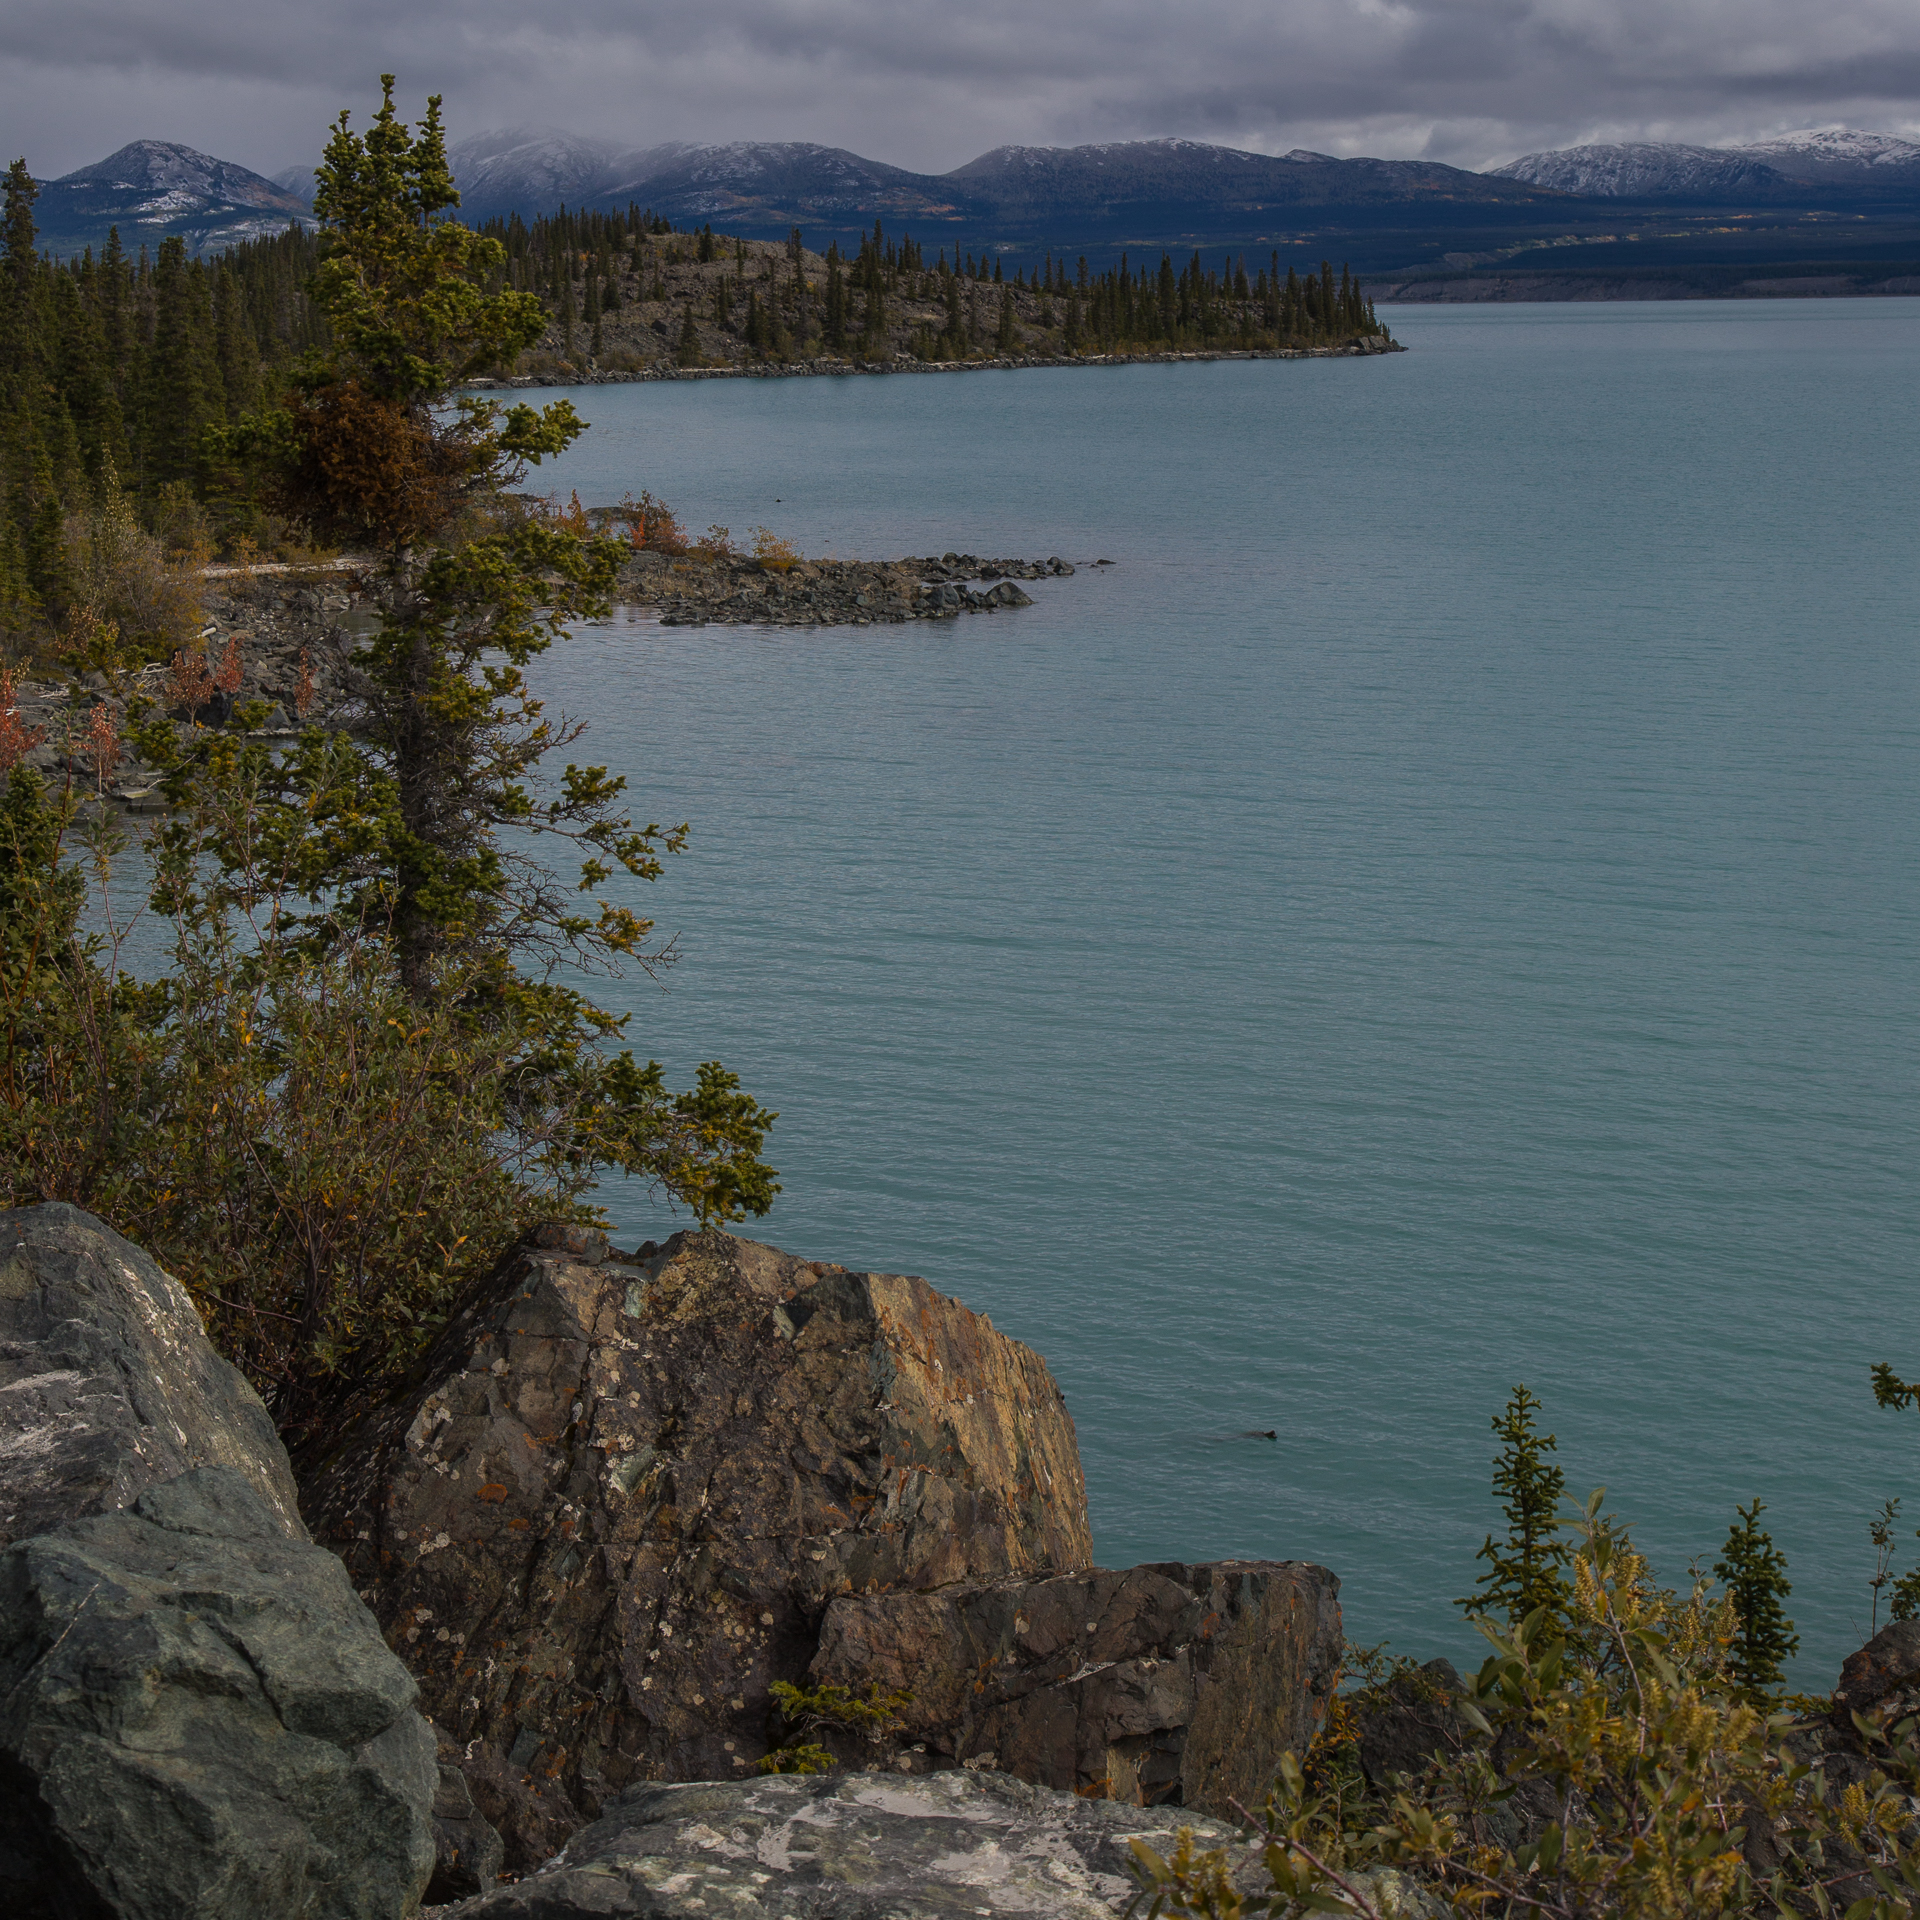 A slightly different view over Kluane Lake.